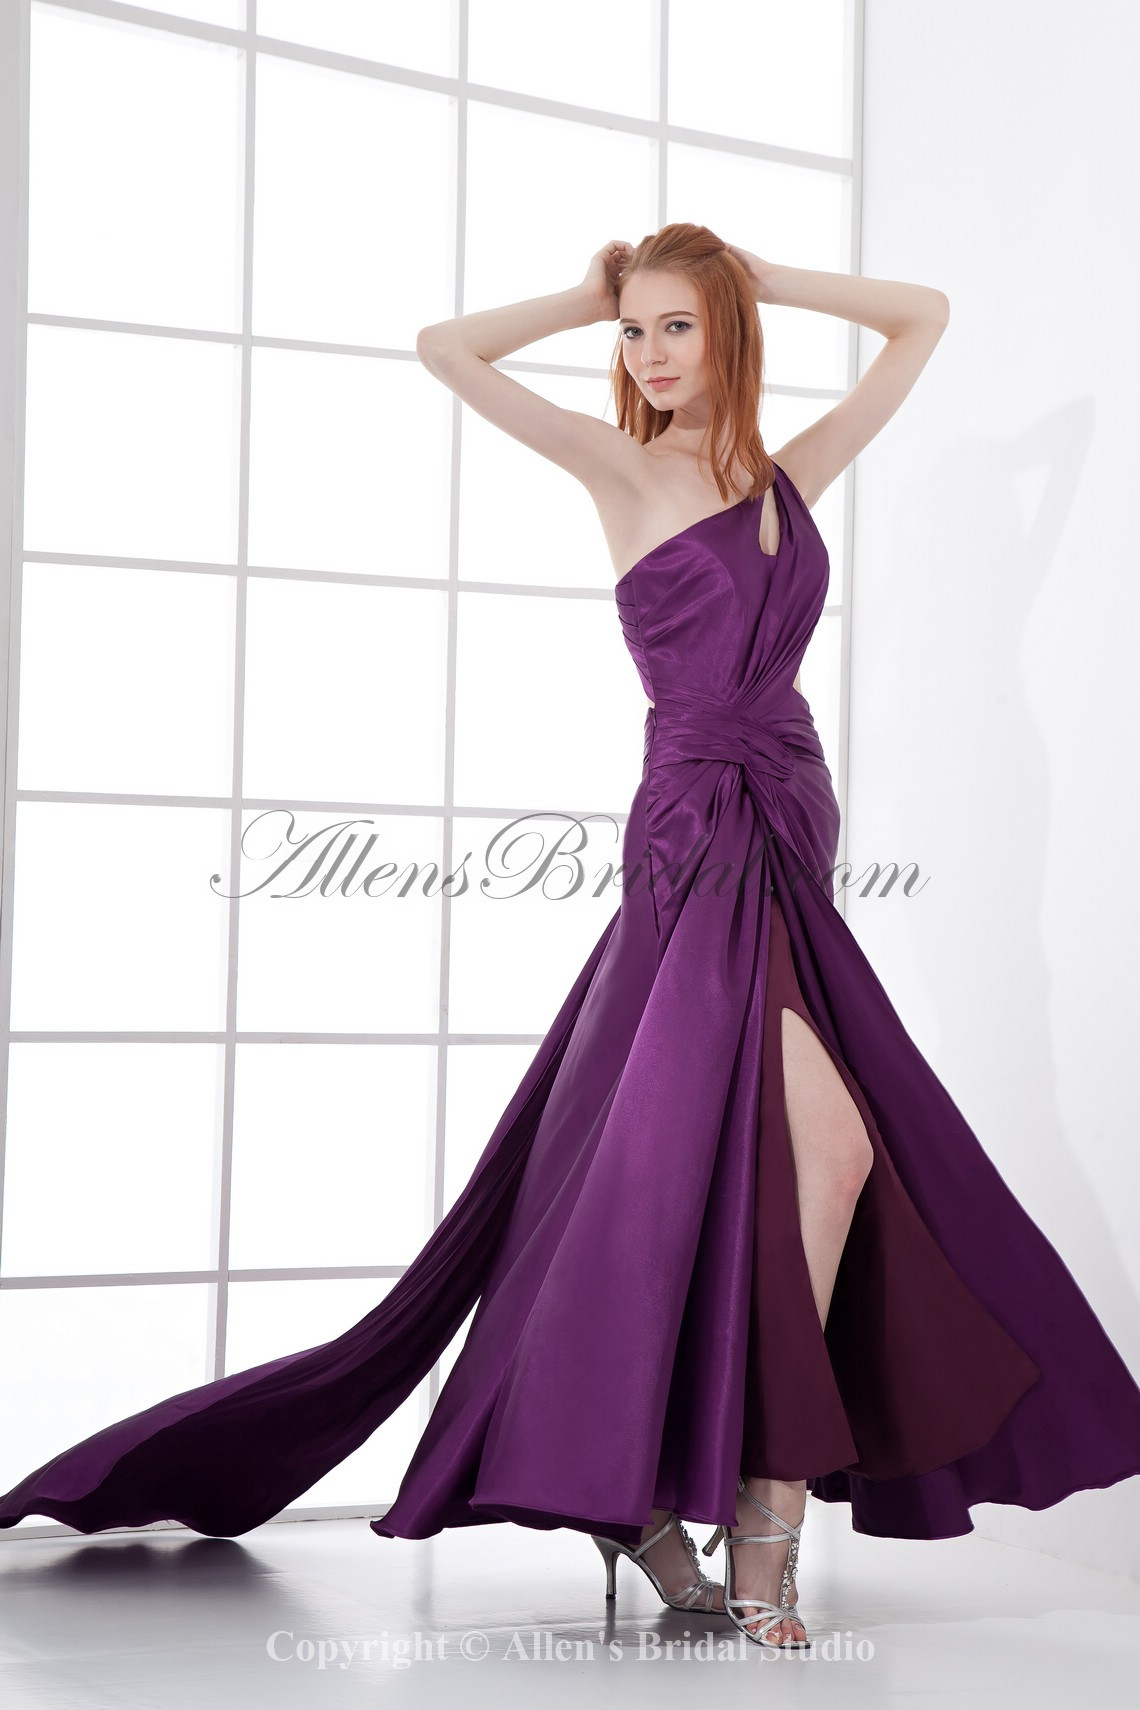 /66-523/satin-one-shoulder-ankle-length-a-line-prom-dress.jpg